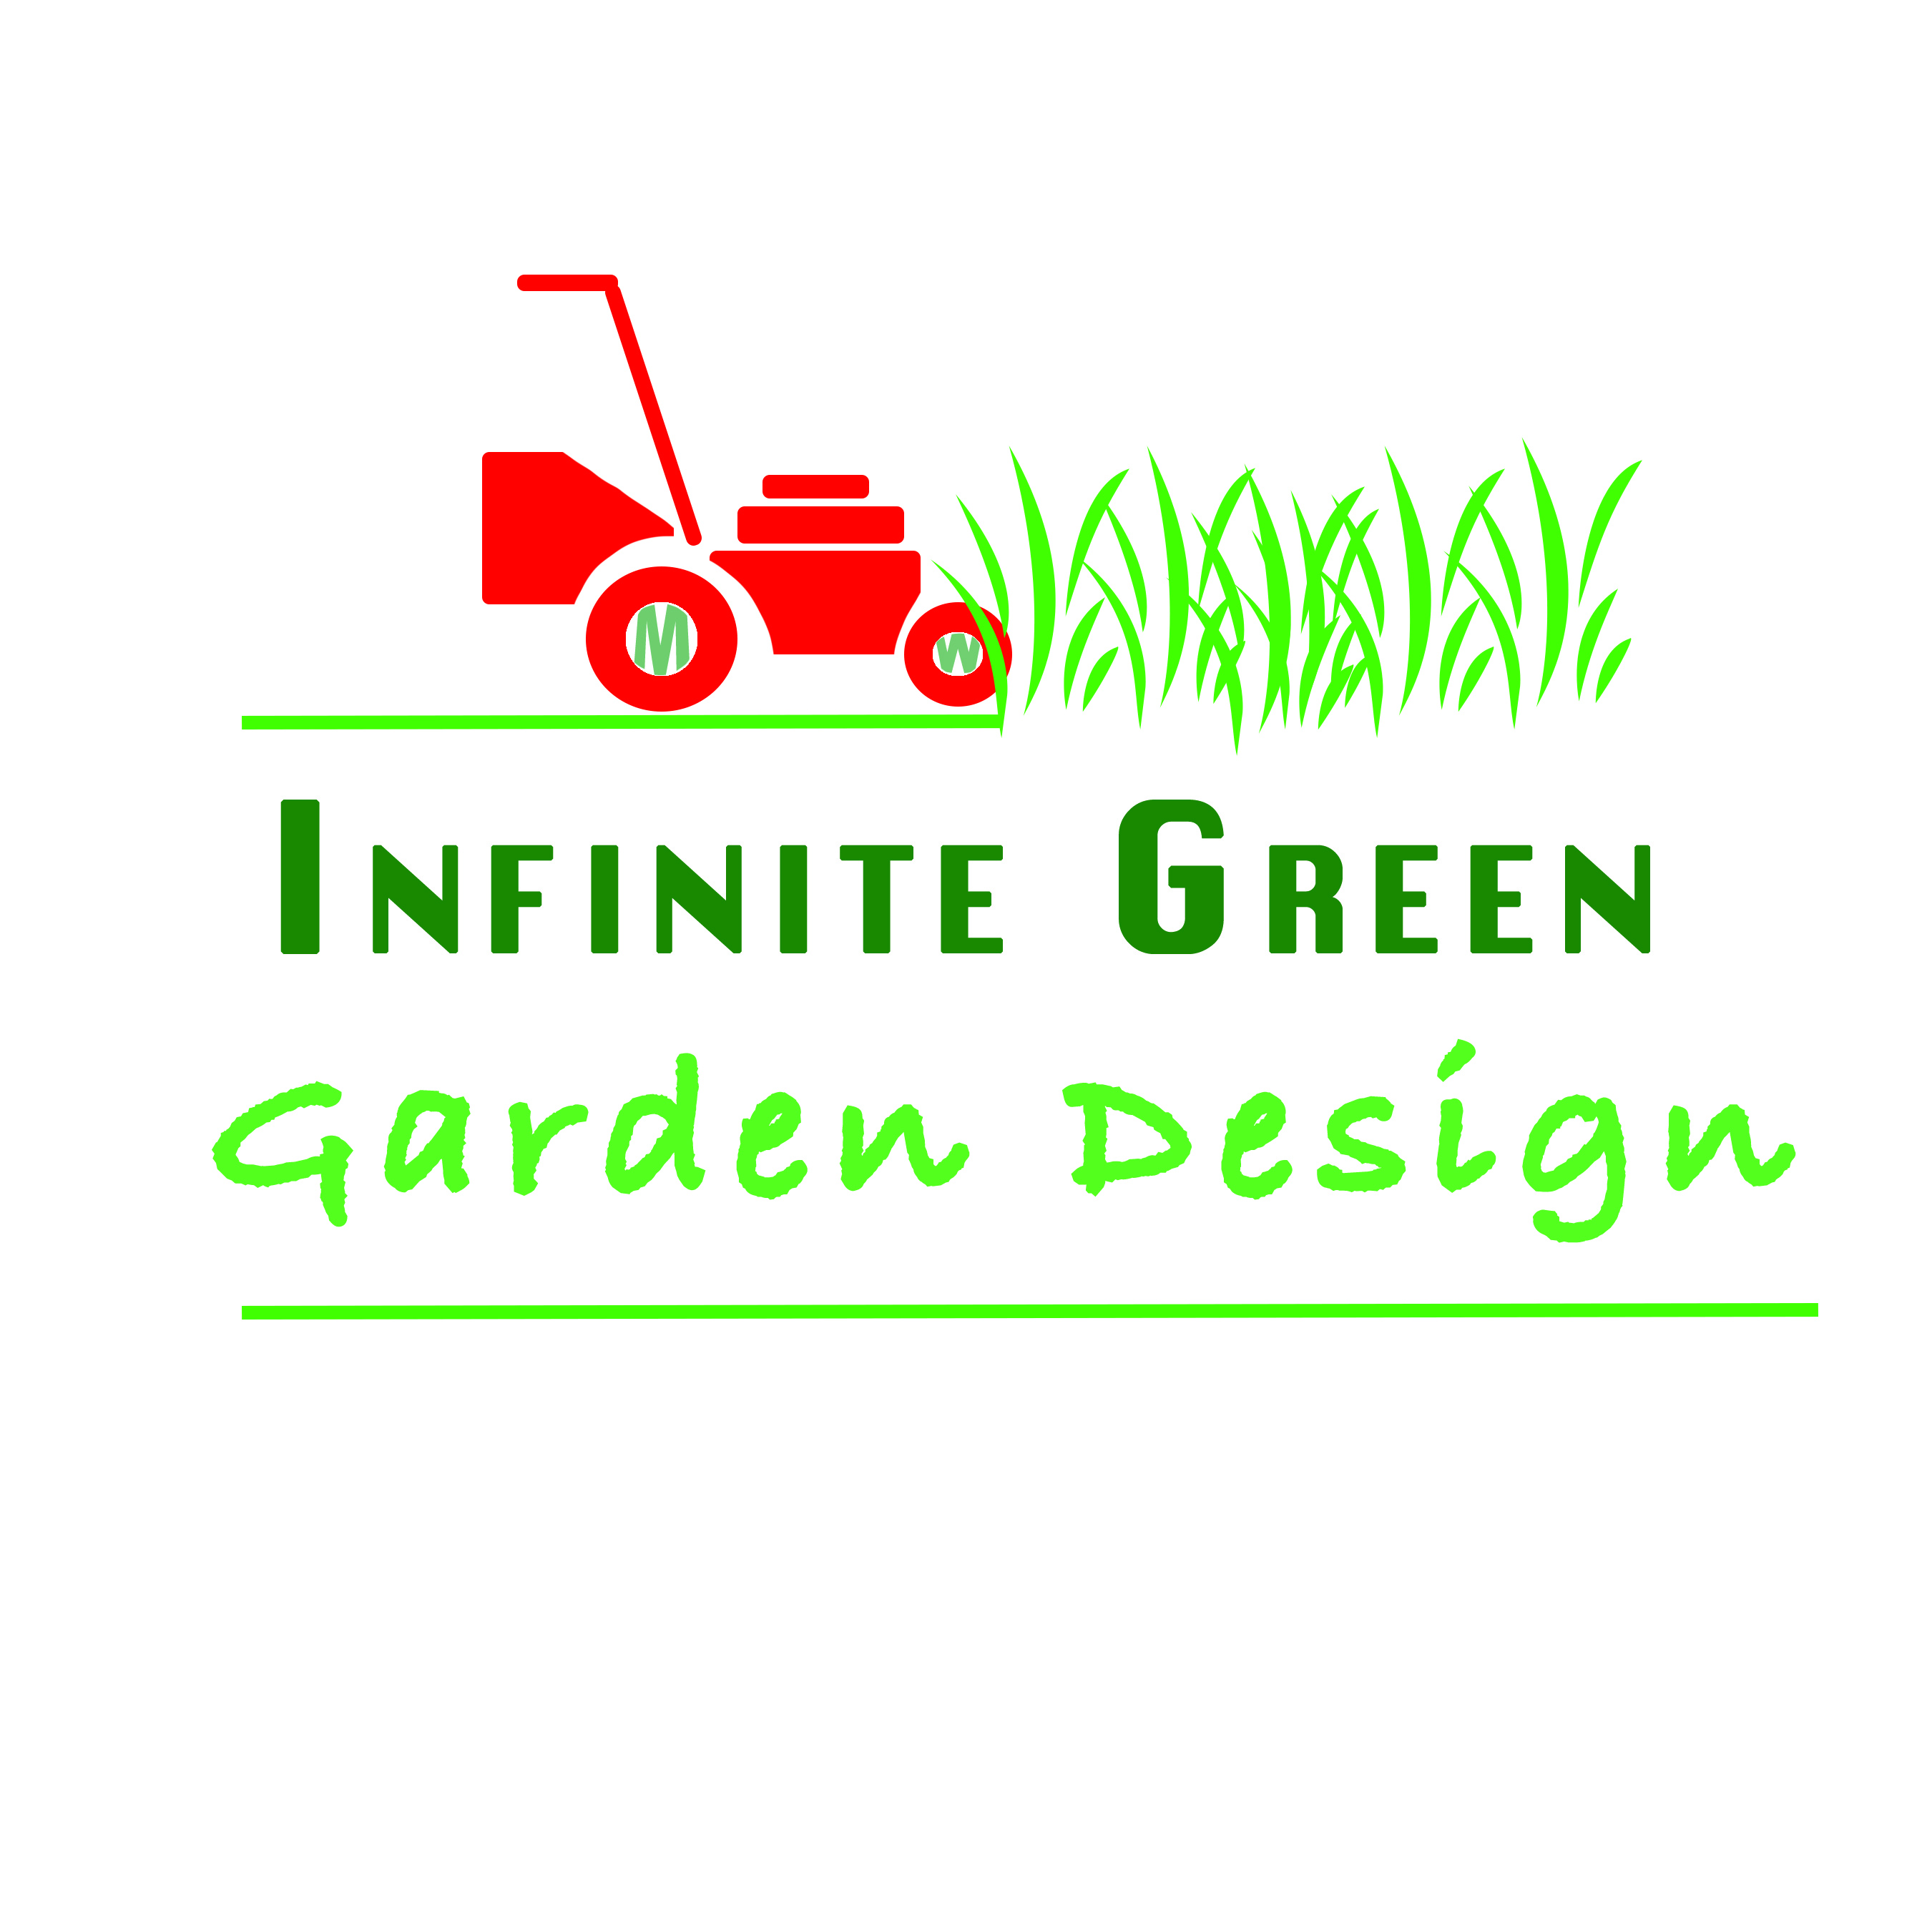 Infinite Green Garden Design